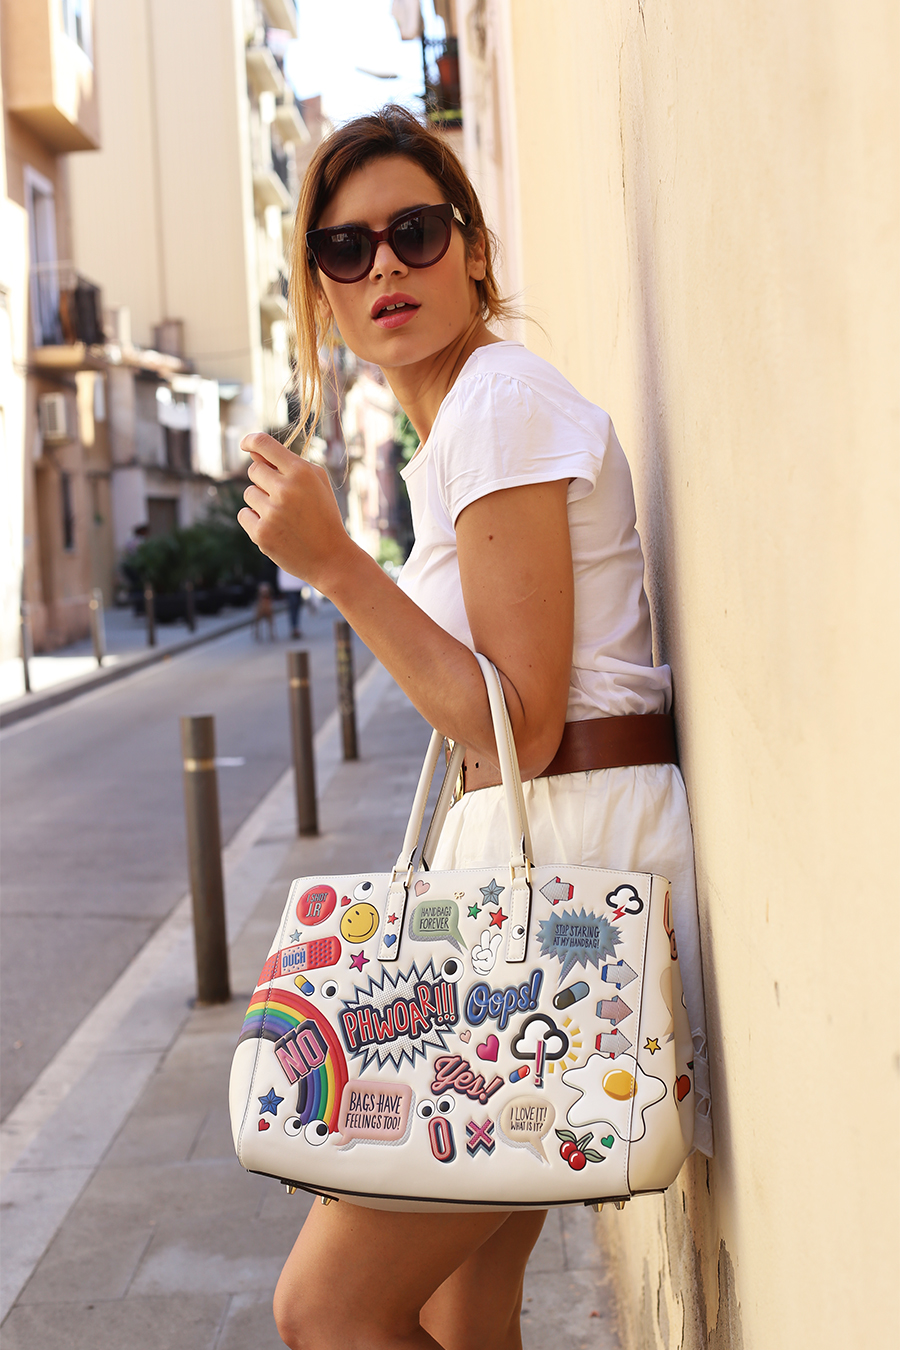 Anya-Hidmarch-bag_Triwa-sunglasses_OOTD-summer-outfit